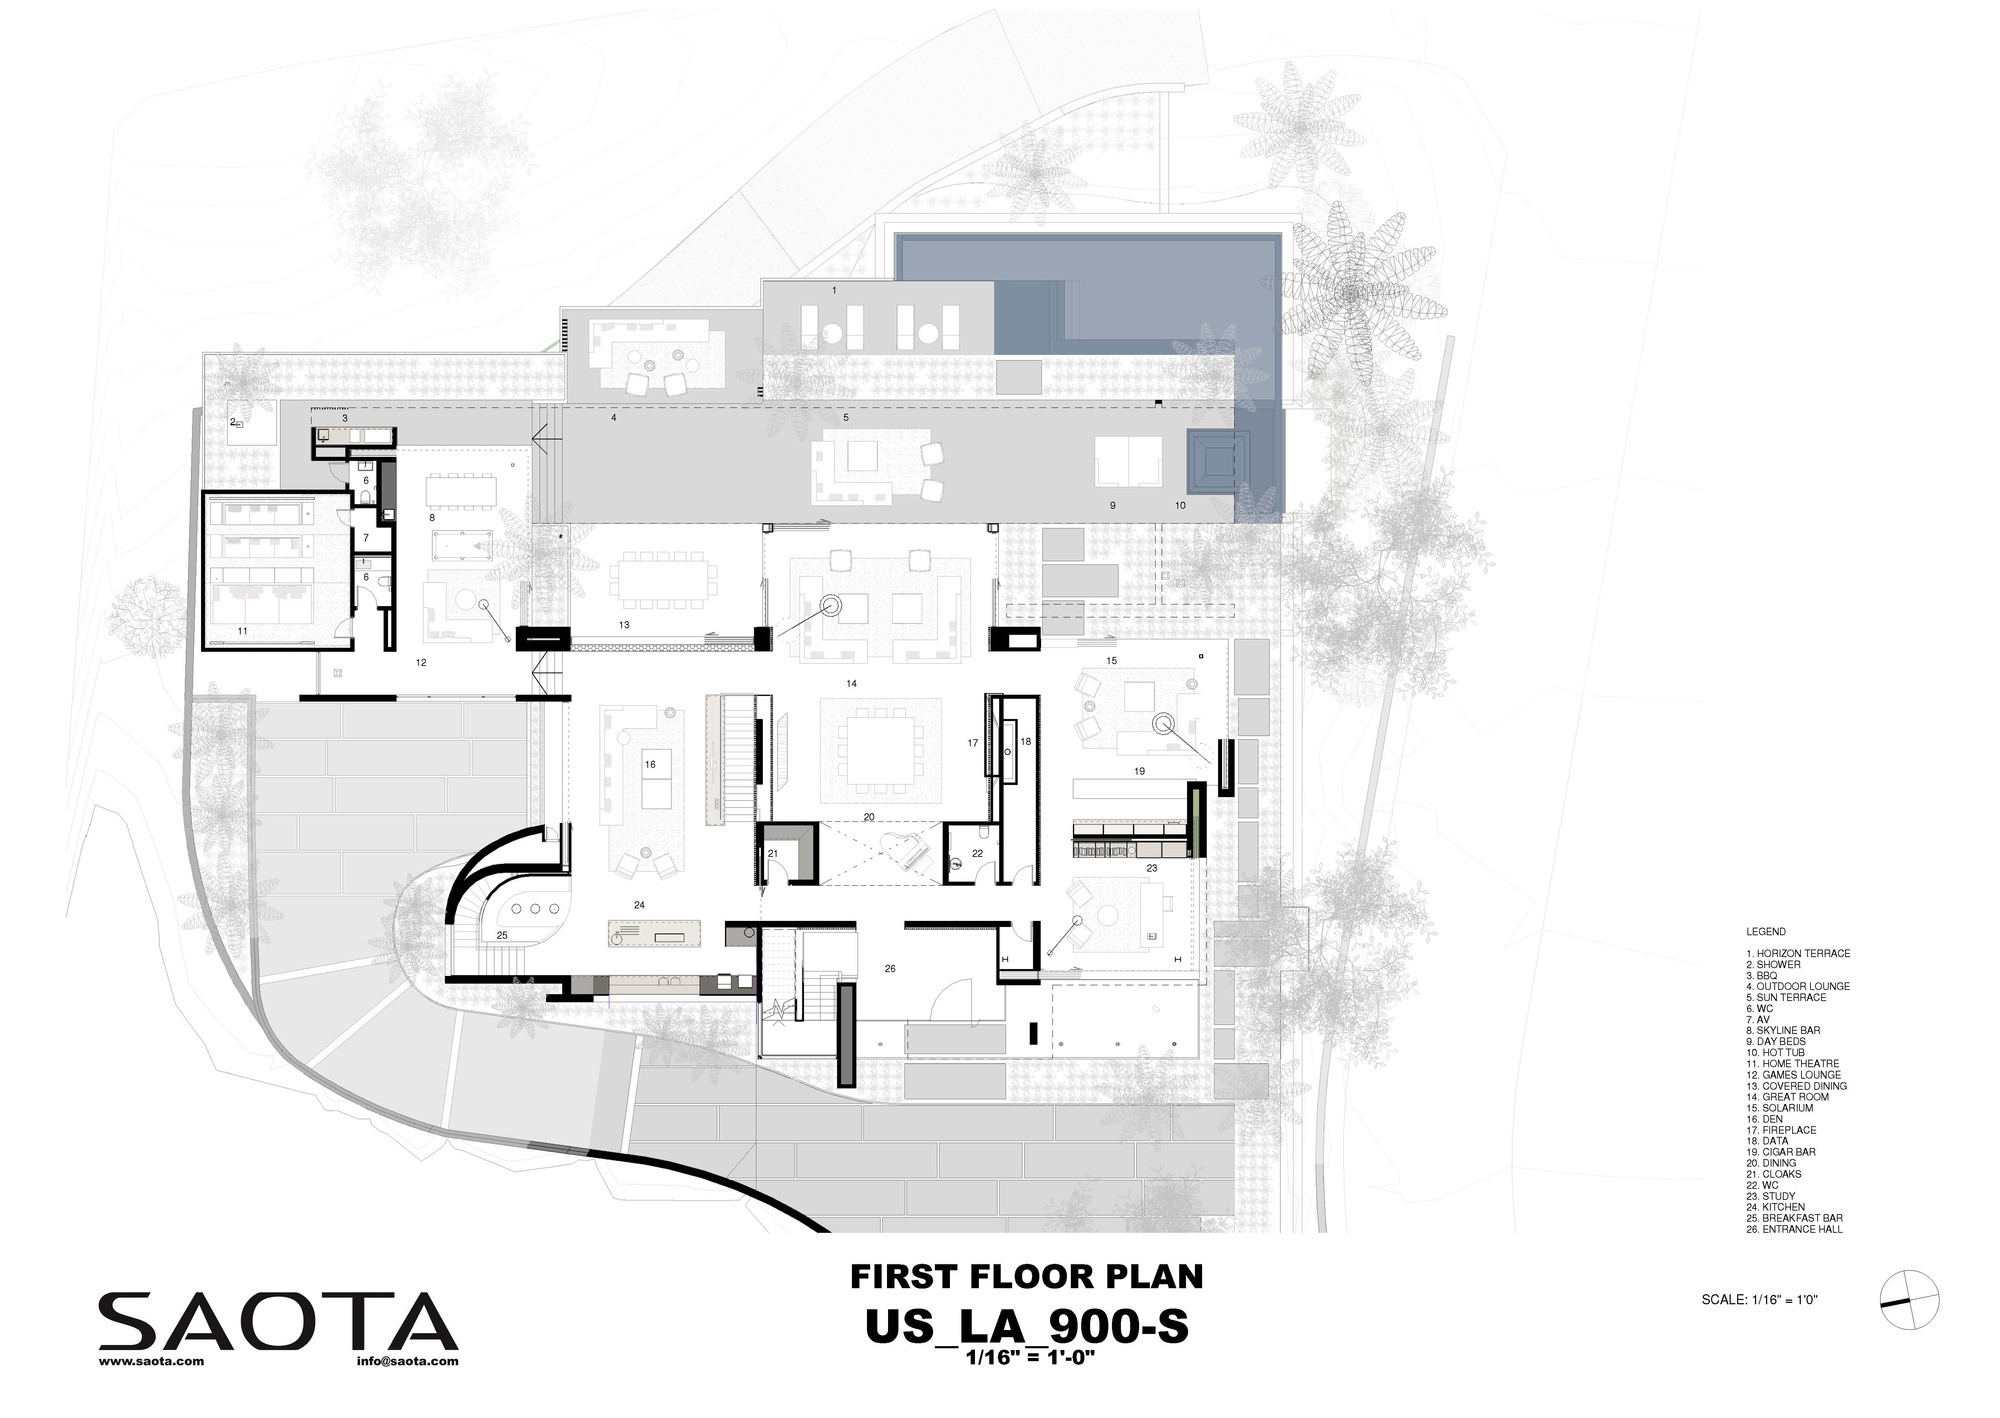 Afc Floor Plan >> Gallery of Stradella / SAOTA - 16